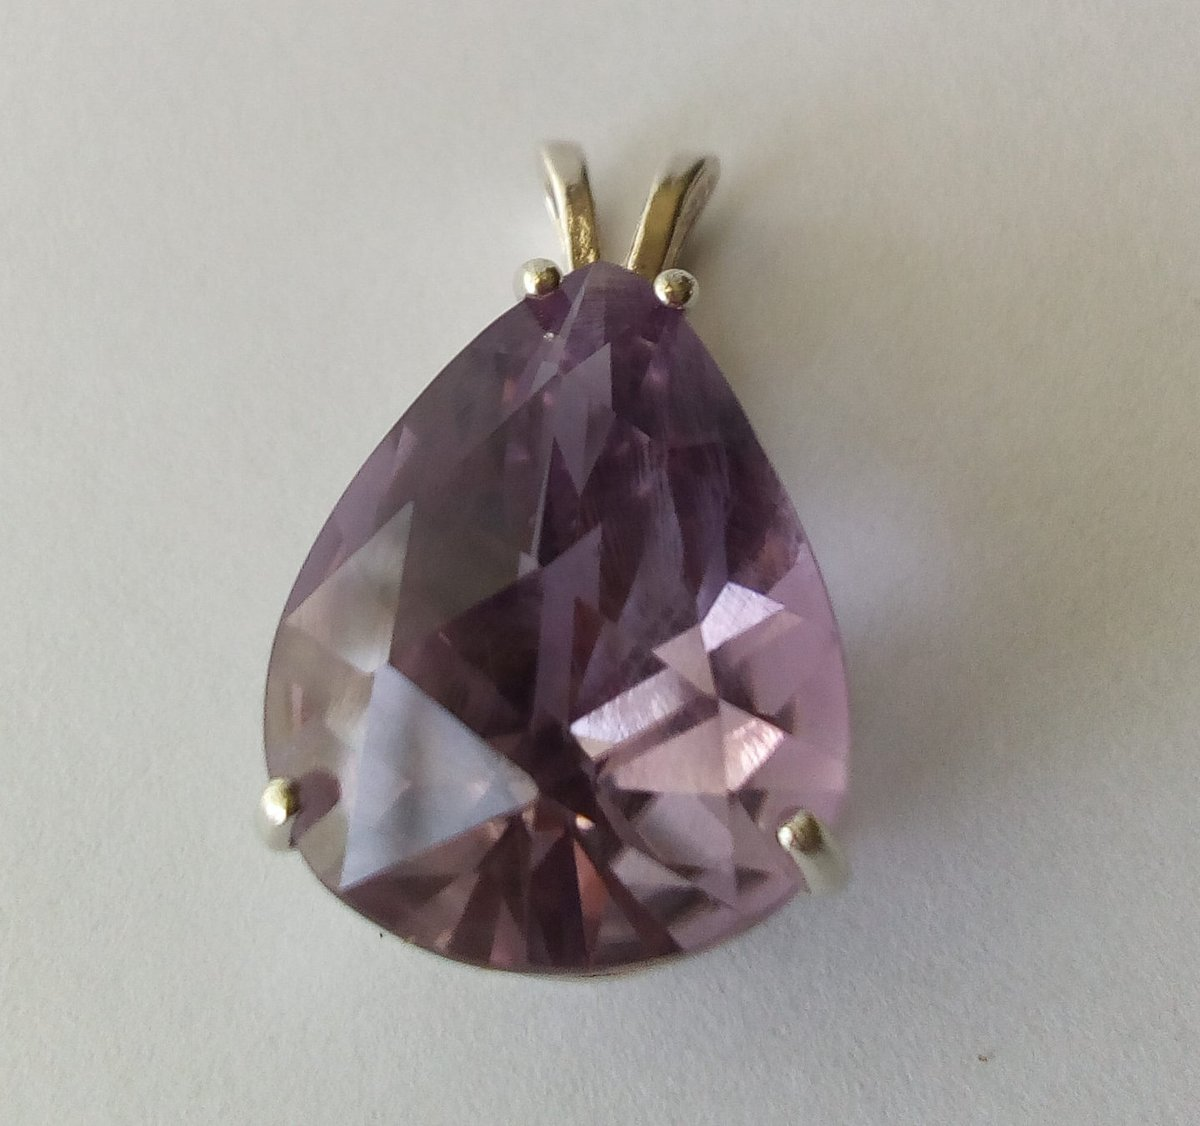 Excited to share the latest addition to my #etsy shop: large 17 carat natural amethyst pendant purple rose checkerboard cut pear shape teardrop unheated amethyst sterling silver jewelry gift  #purple #large #teardrop #pendant #silver #amethyst